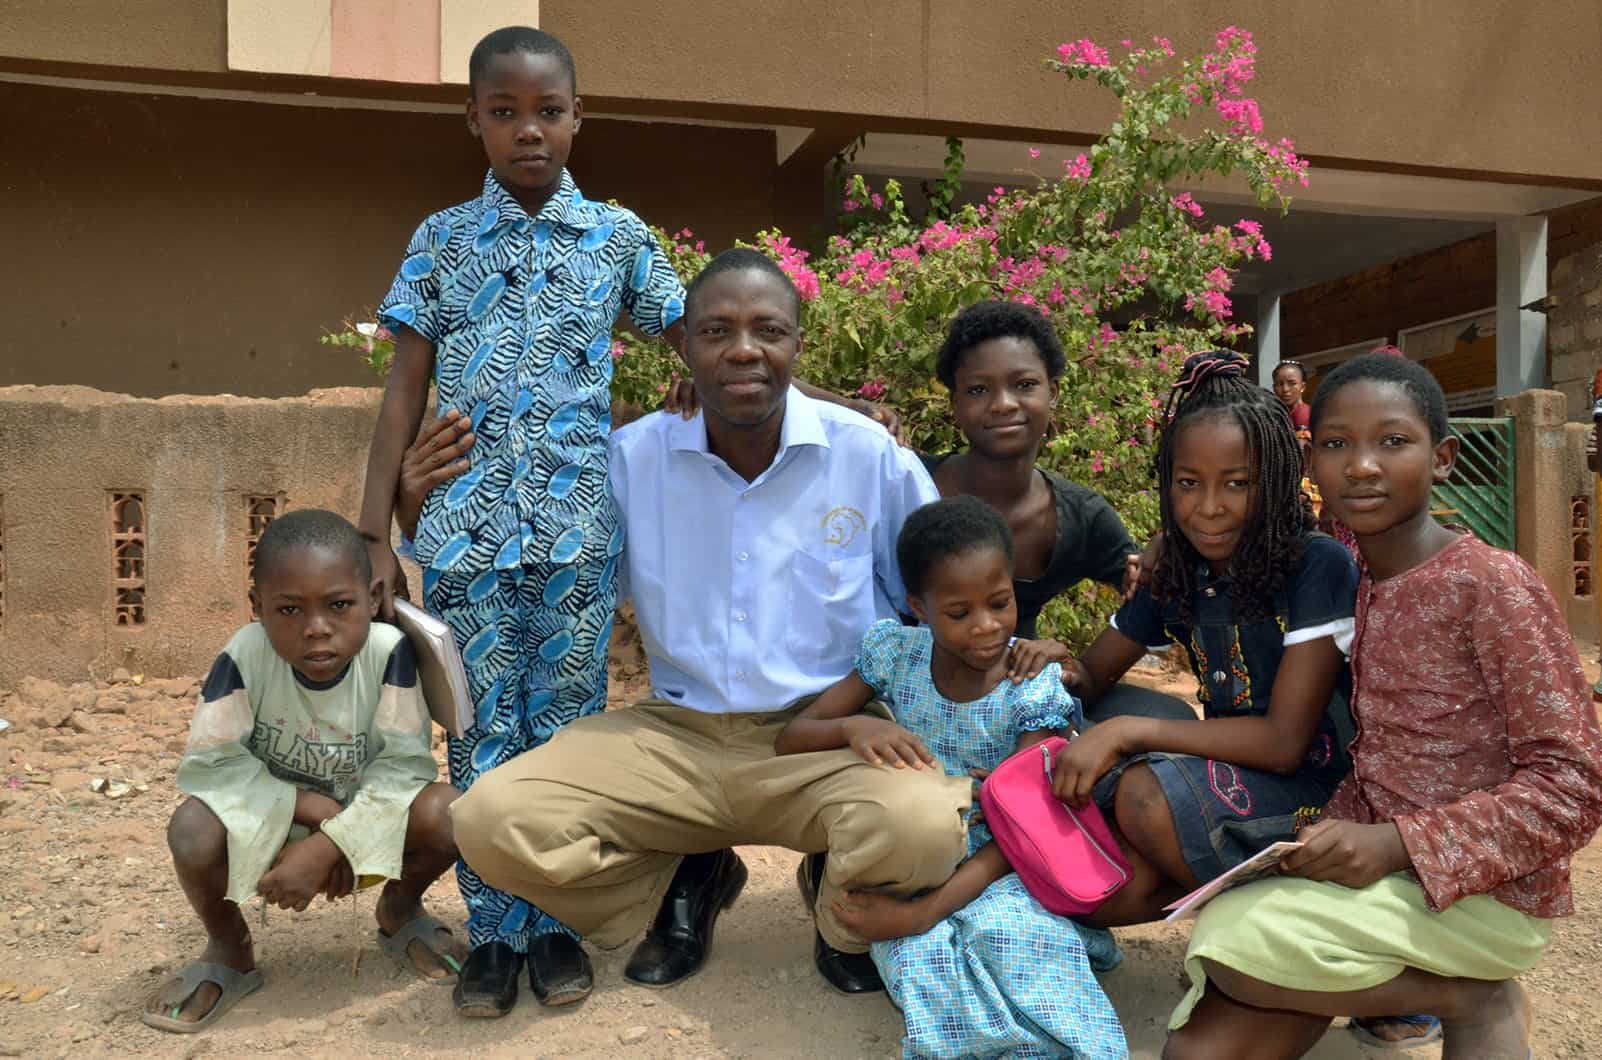 Burkina Faso National Director Ouali Palamanga. He is kneeling down, surrounded by children. They are in front of a brown building.